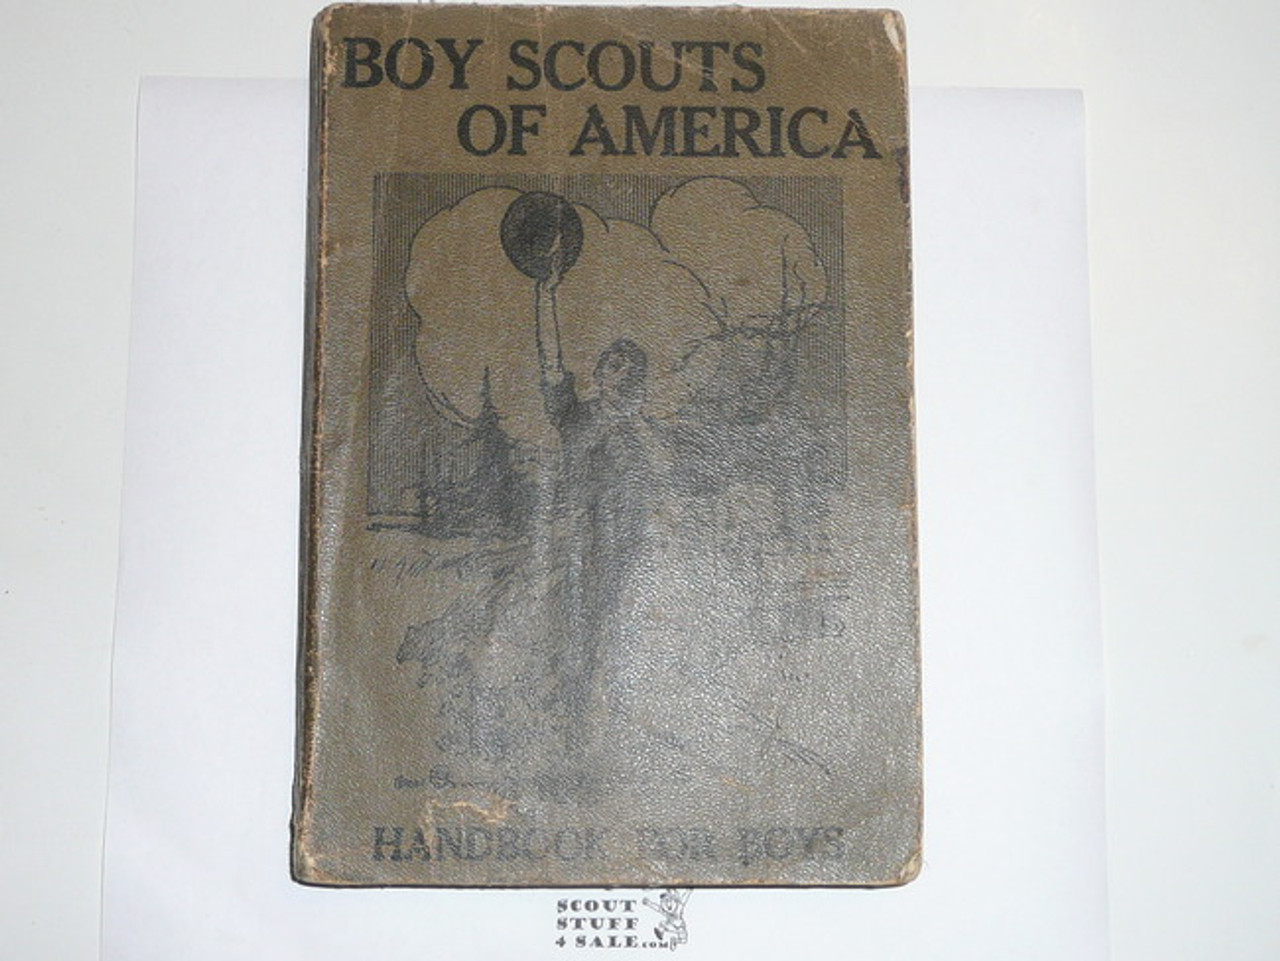 1911 Boy Scout Handbook, PROOF PRINTING, 320 Pages, NEAR MINT, the best condition we have ever seen